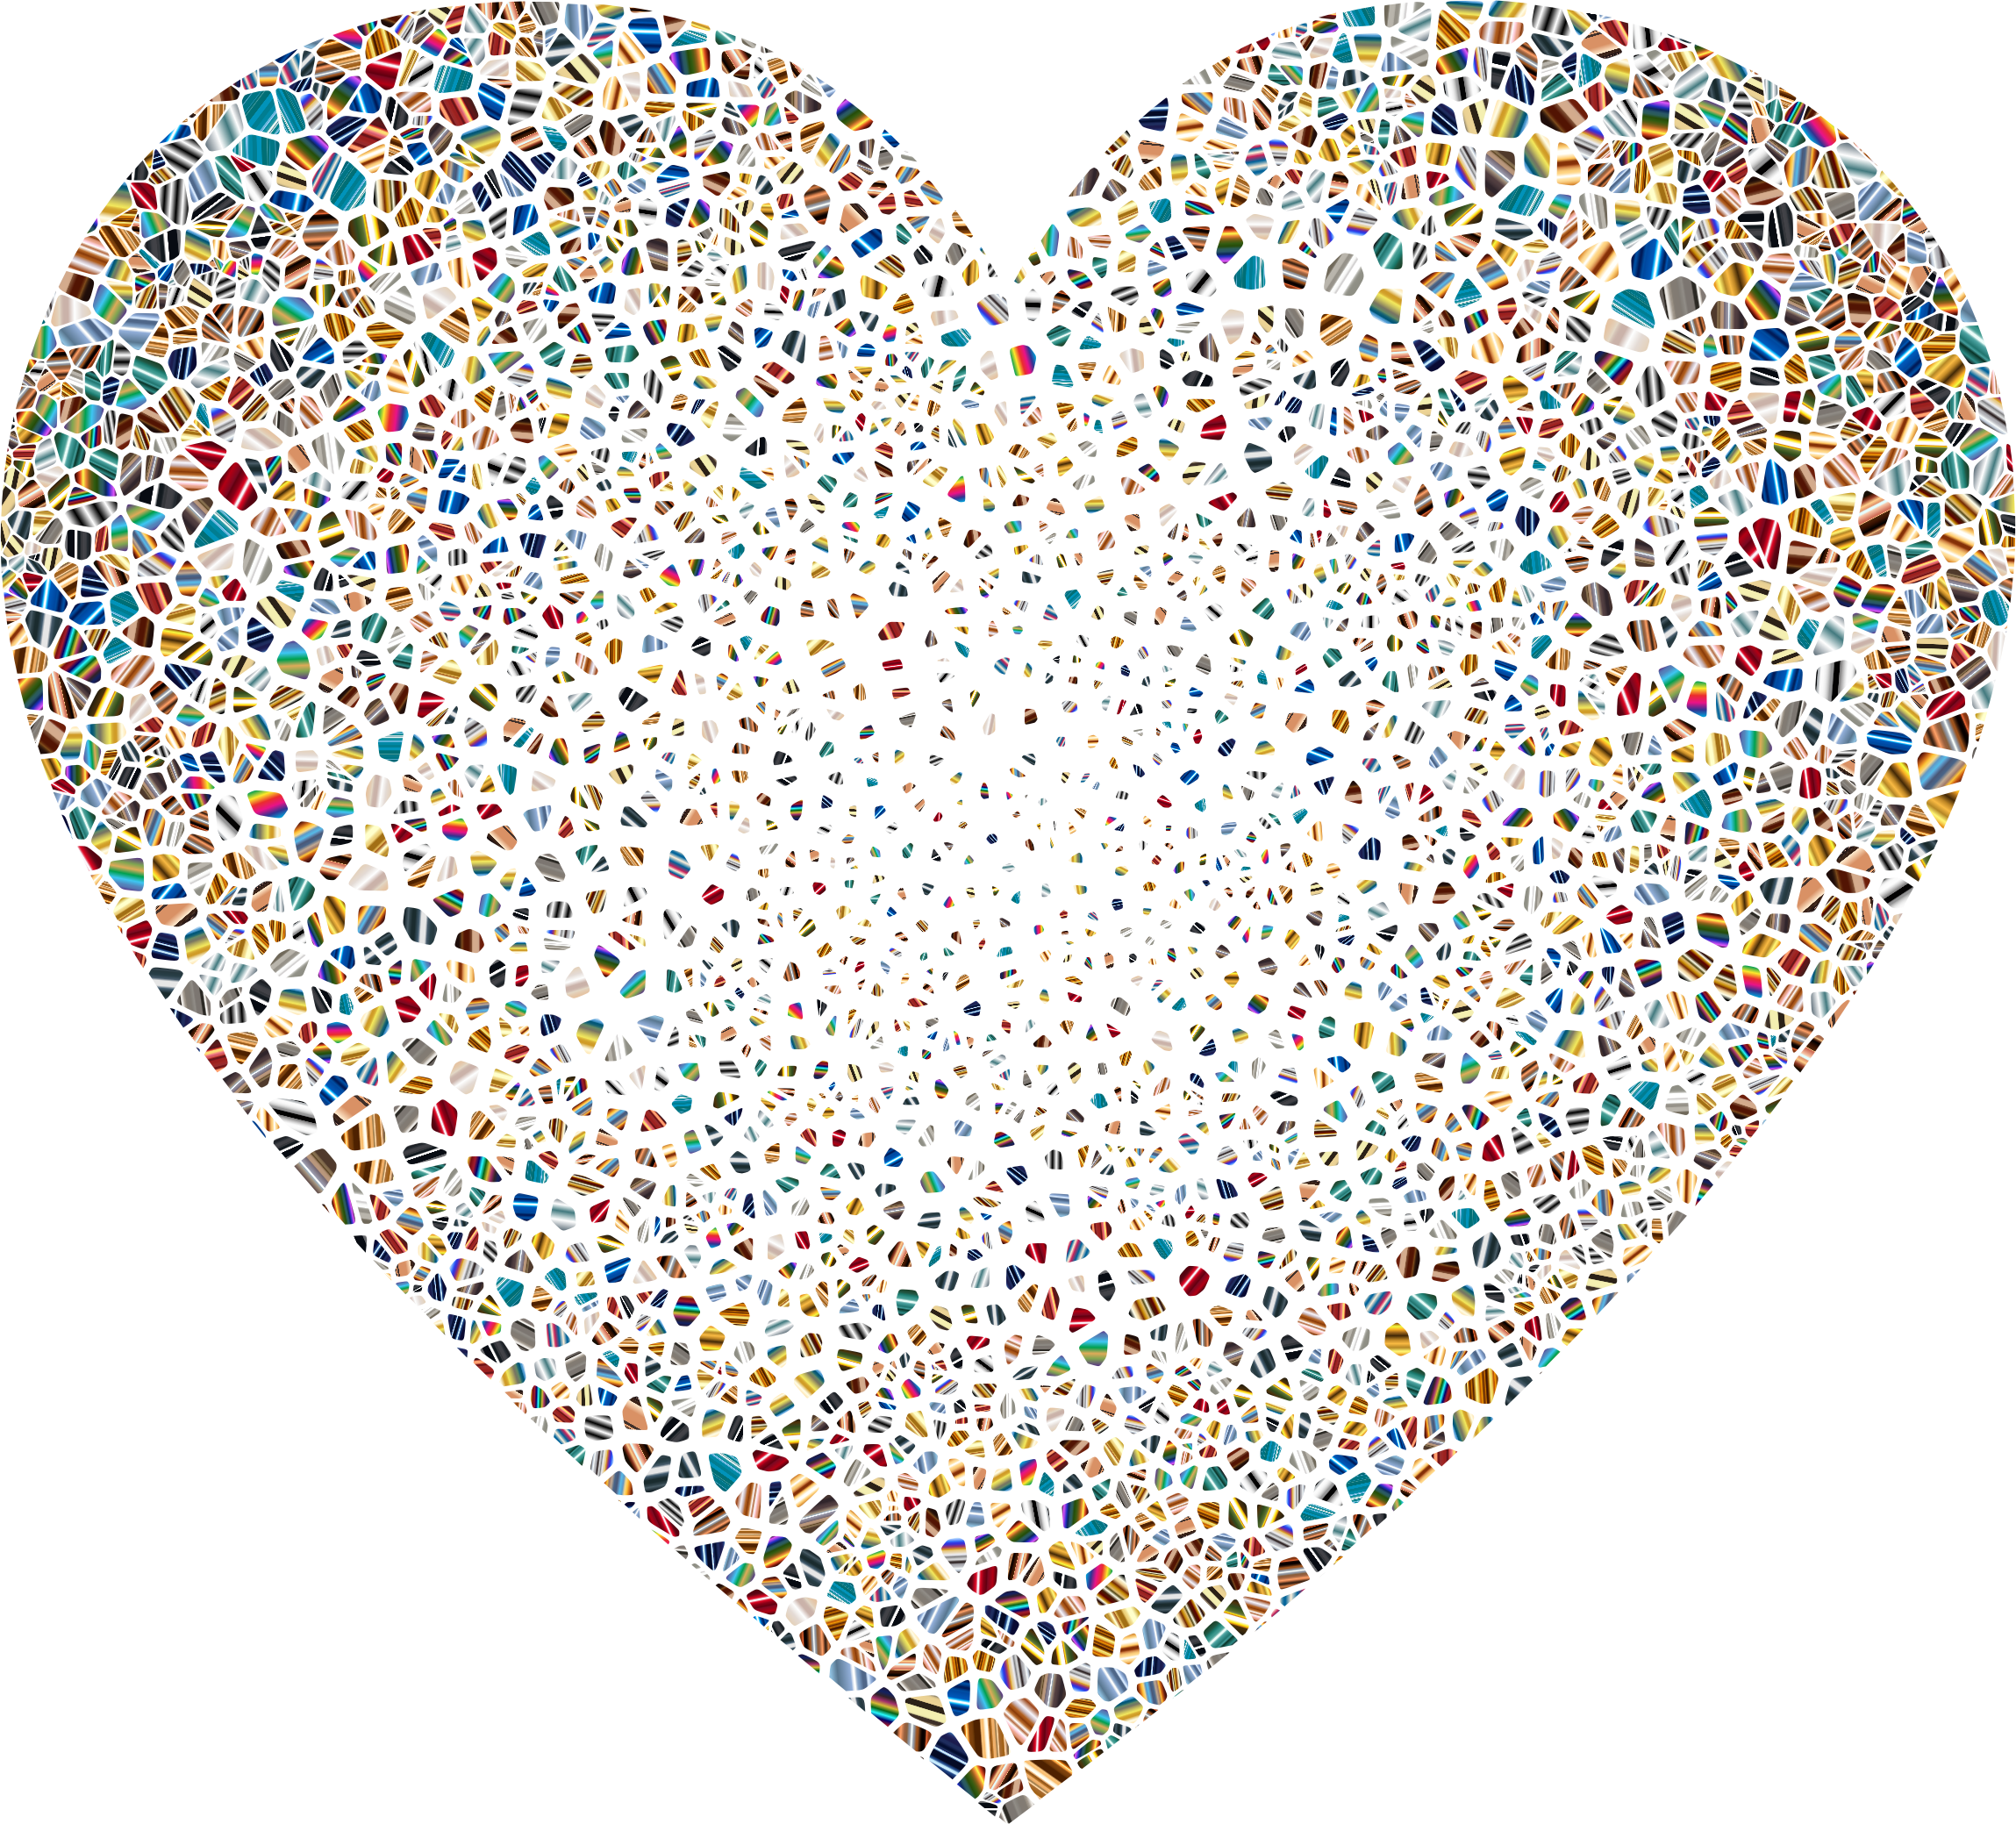 Psychedelic Shattered Tiled Heart No Background by GDJ